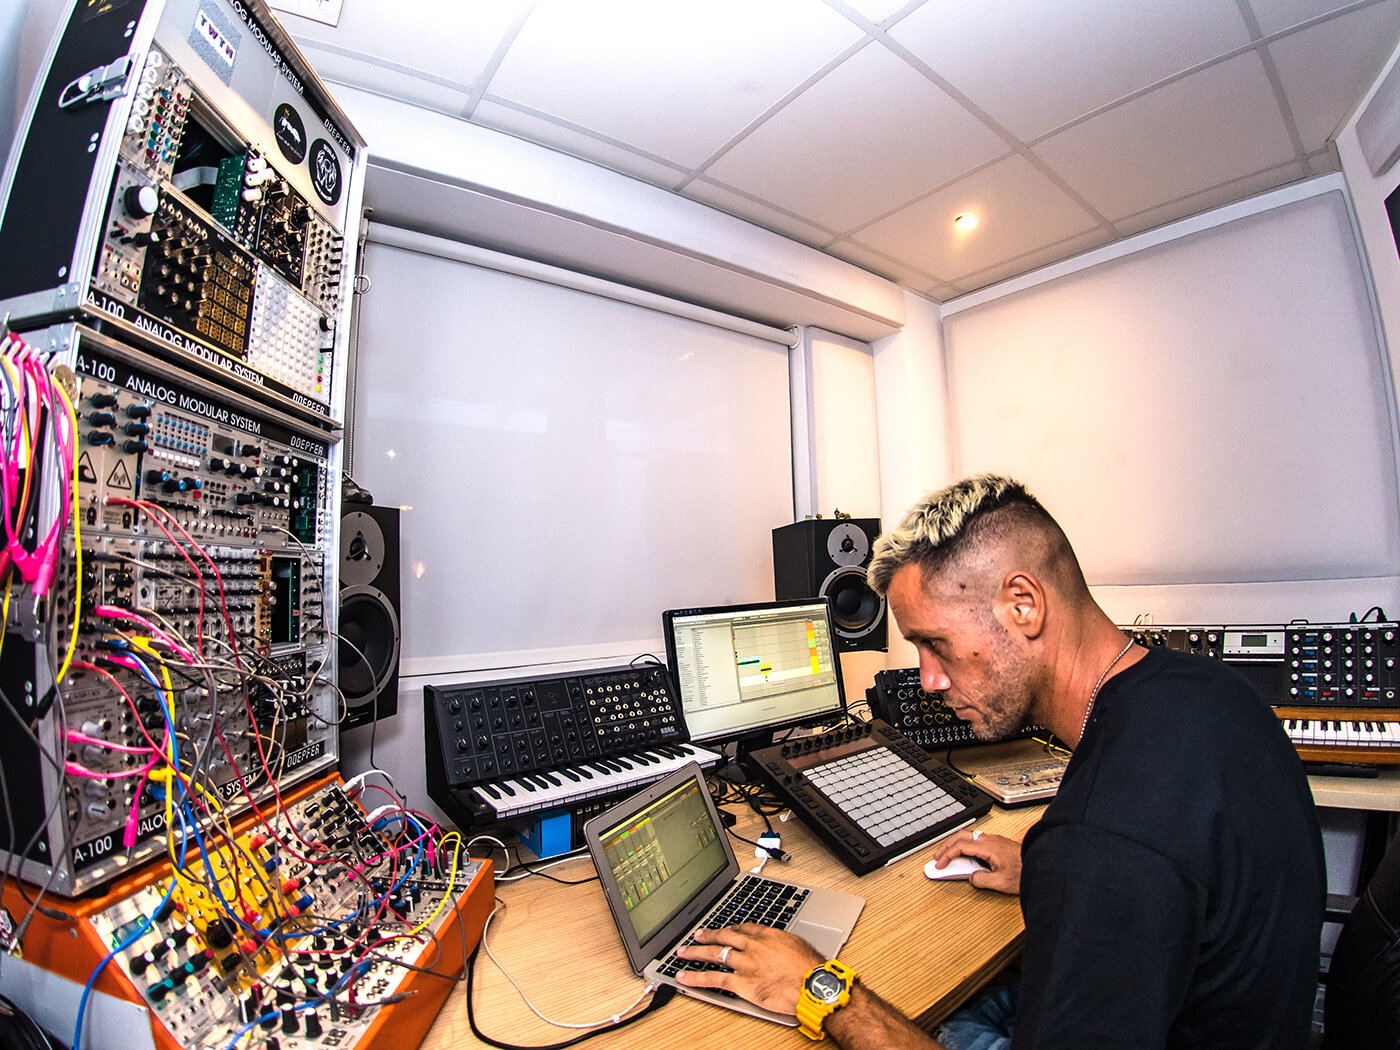 Techno star and Ibiza mainstay Francisco Allendes gives us production tips and a tour of his gear